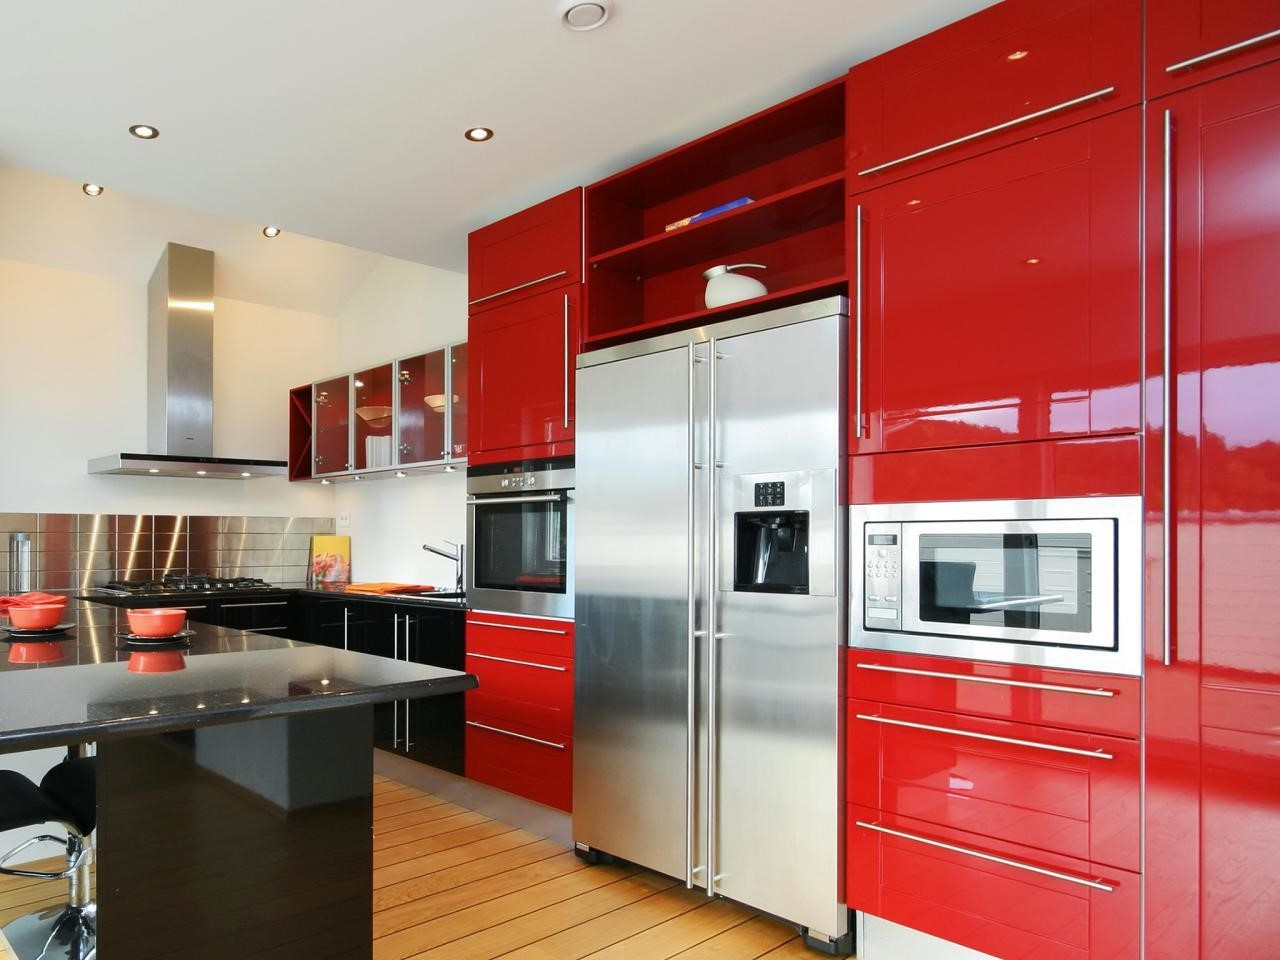 44 Best Ideas Of Modern Kitchen Cabinets For 2016